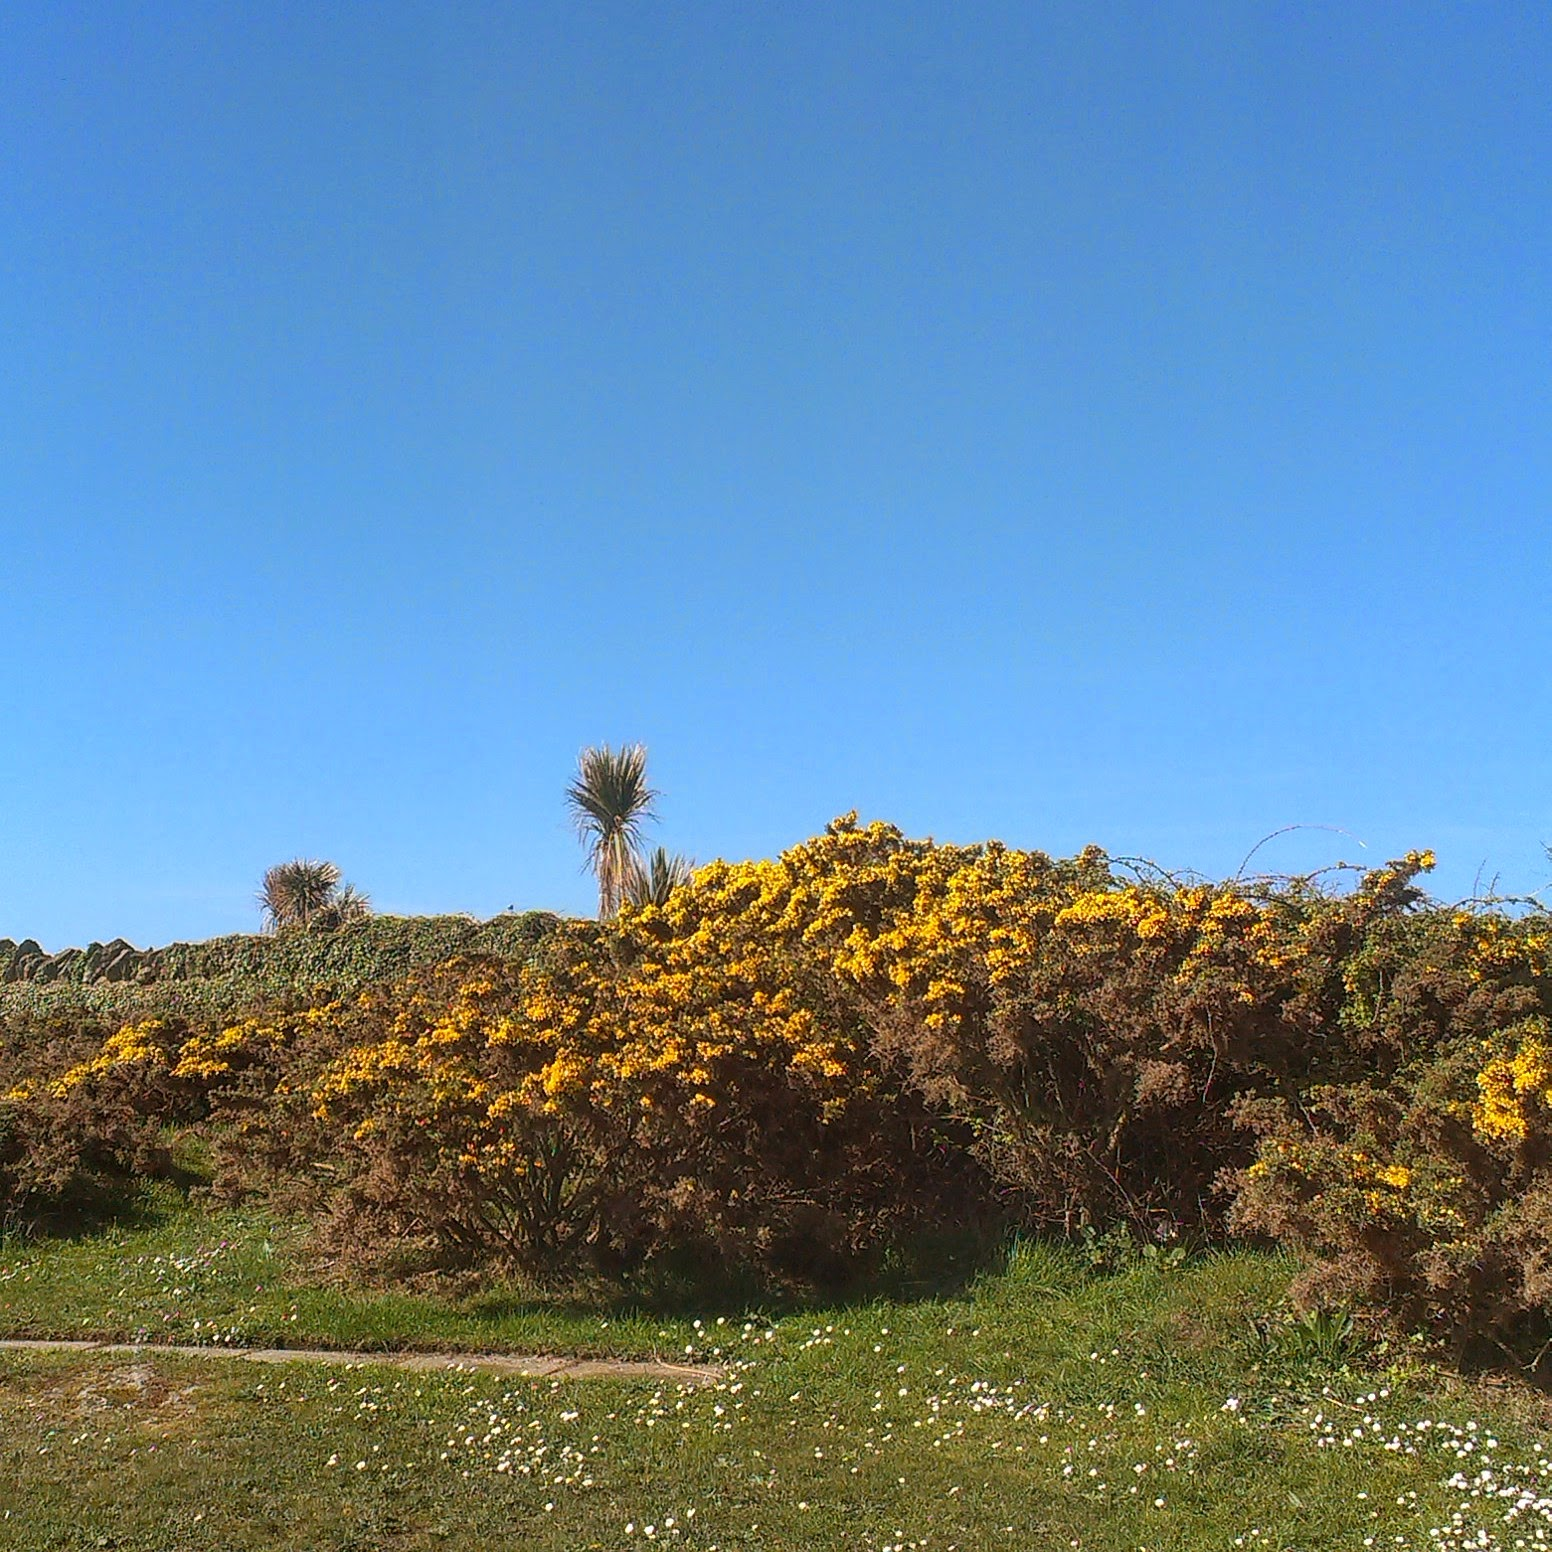 Blue skies and gorse